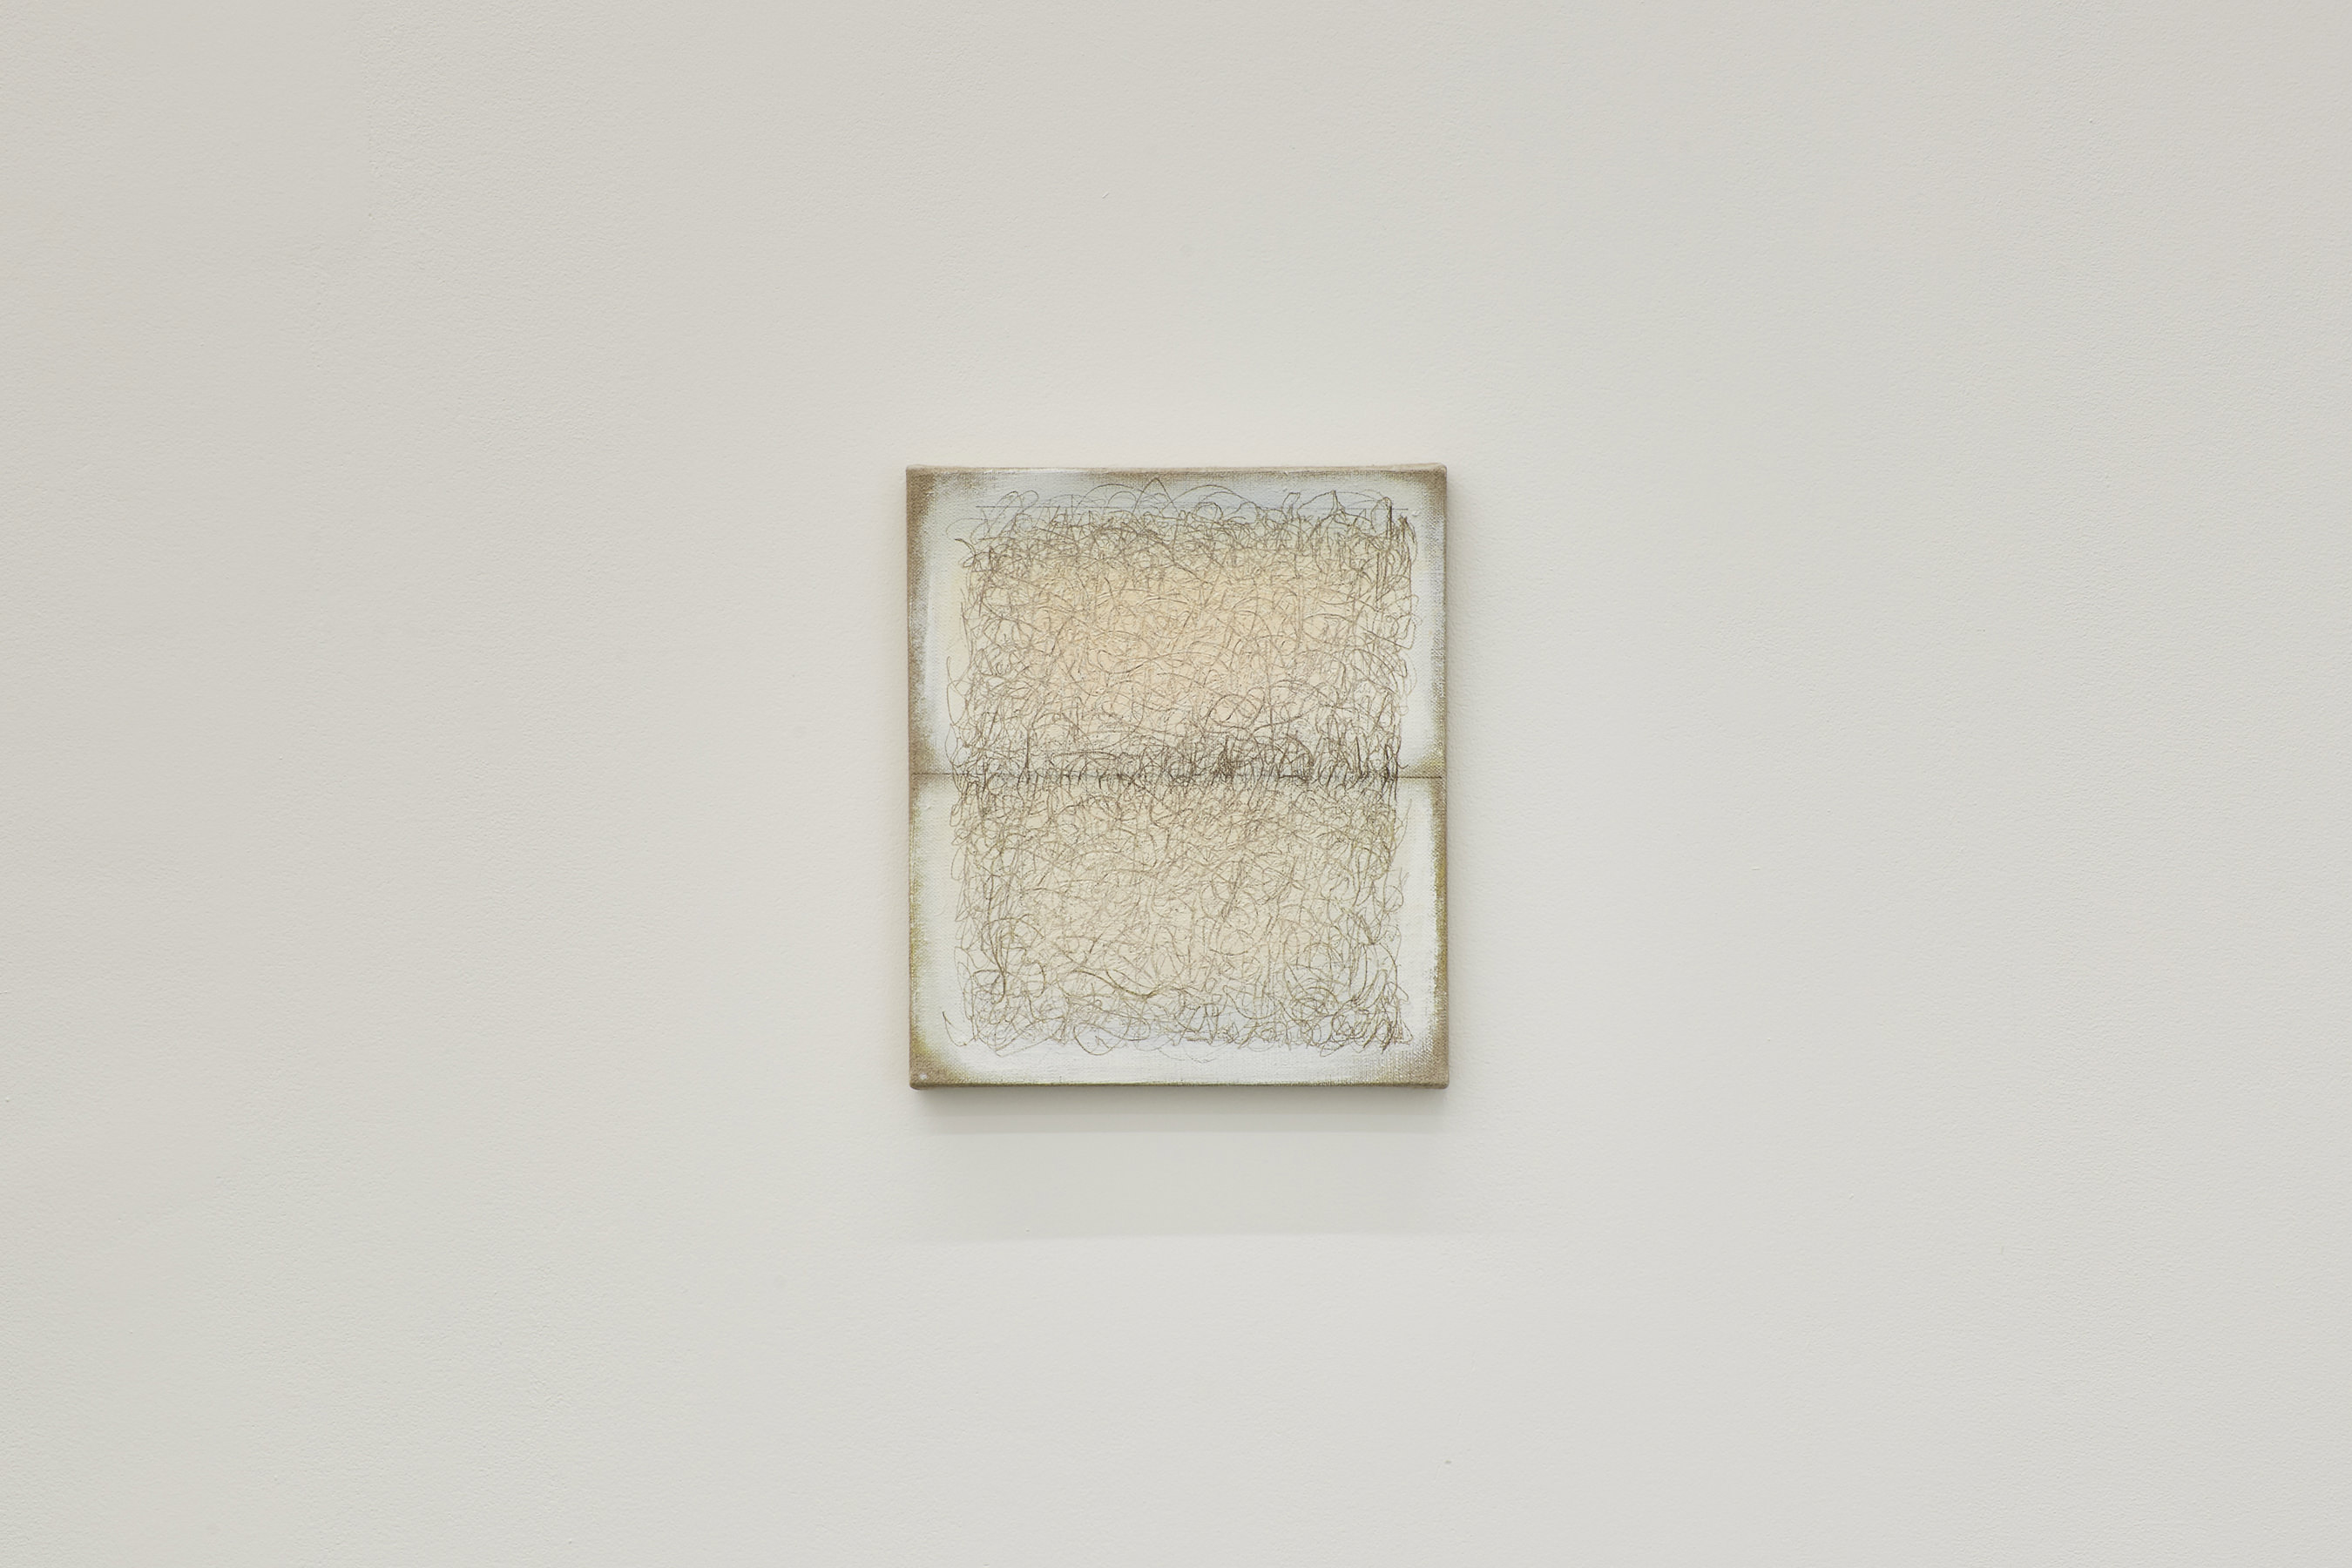 Richard Höglund, Sea Picture LXIII, 2016, silver, tin, lead and oil on linen prepared with bone pulver and marble dust, 30 x 26 cm